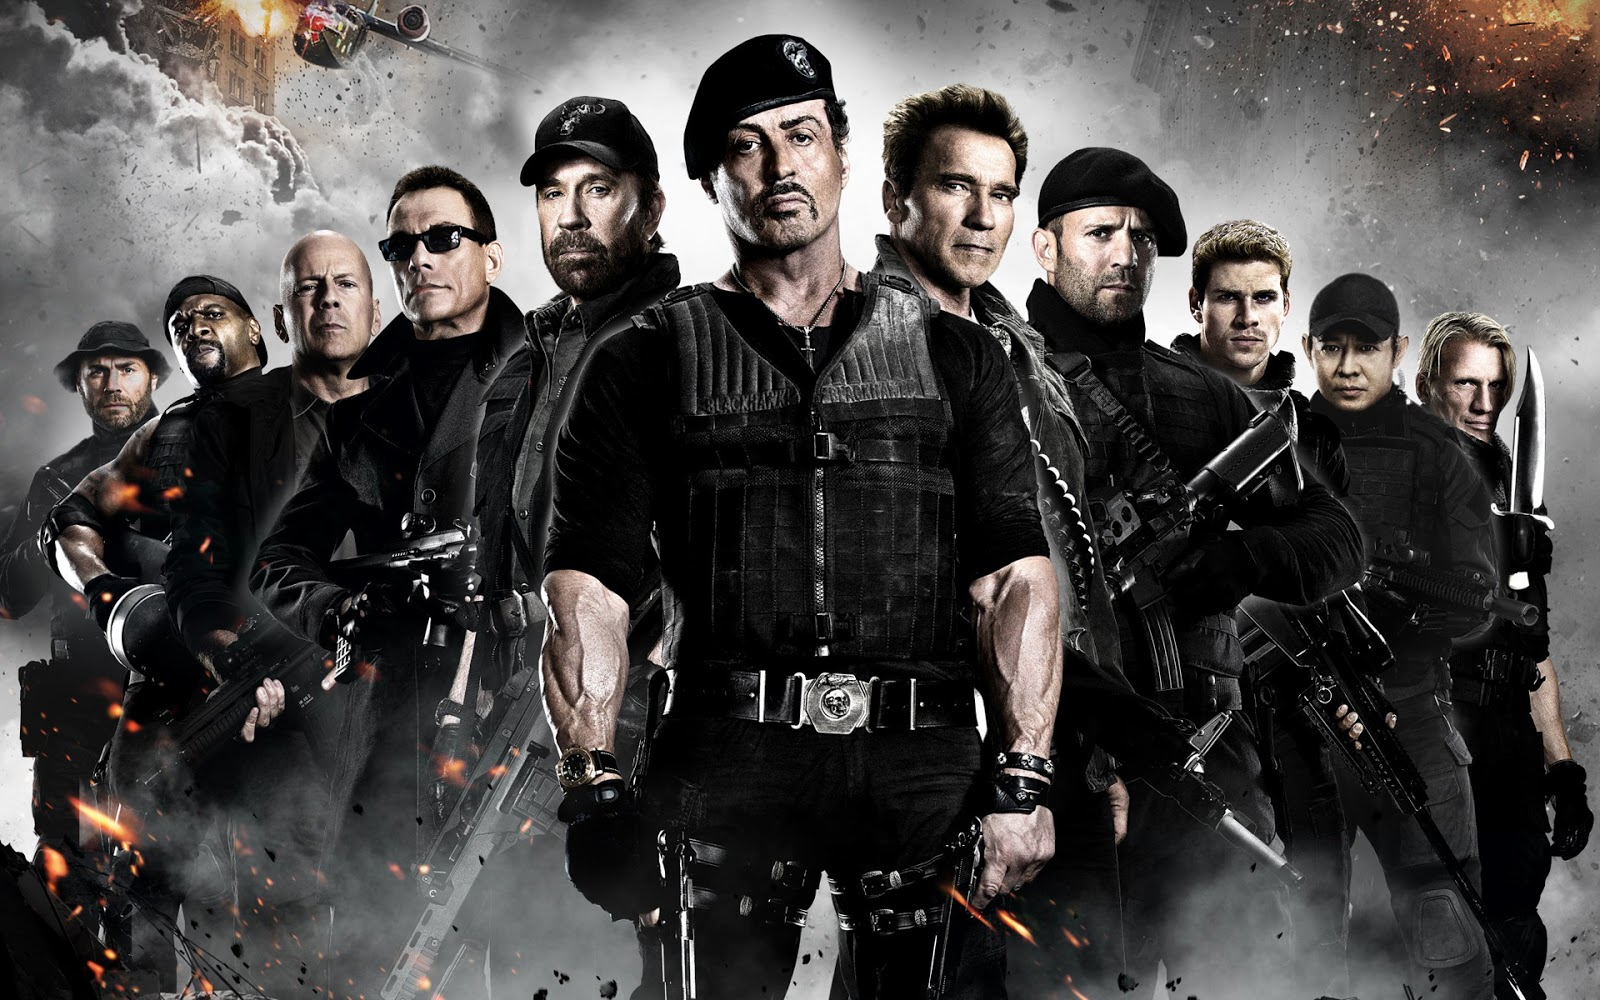 The Expendables 3 - Movie Review and Plot